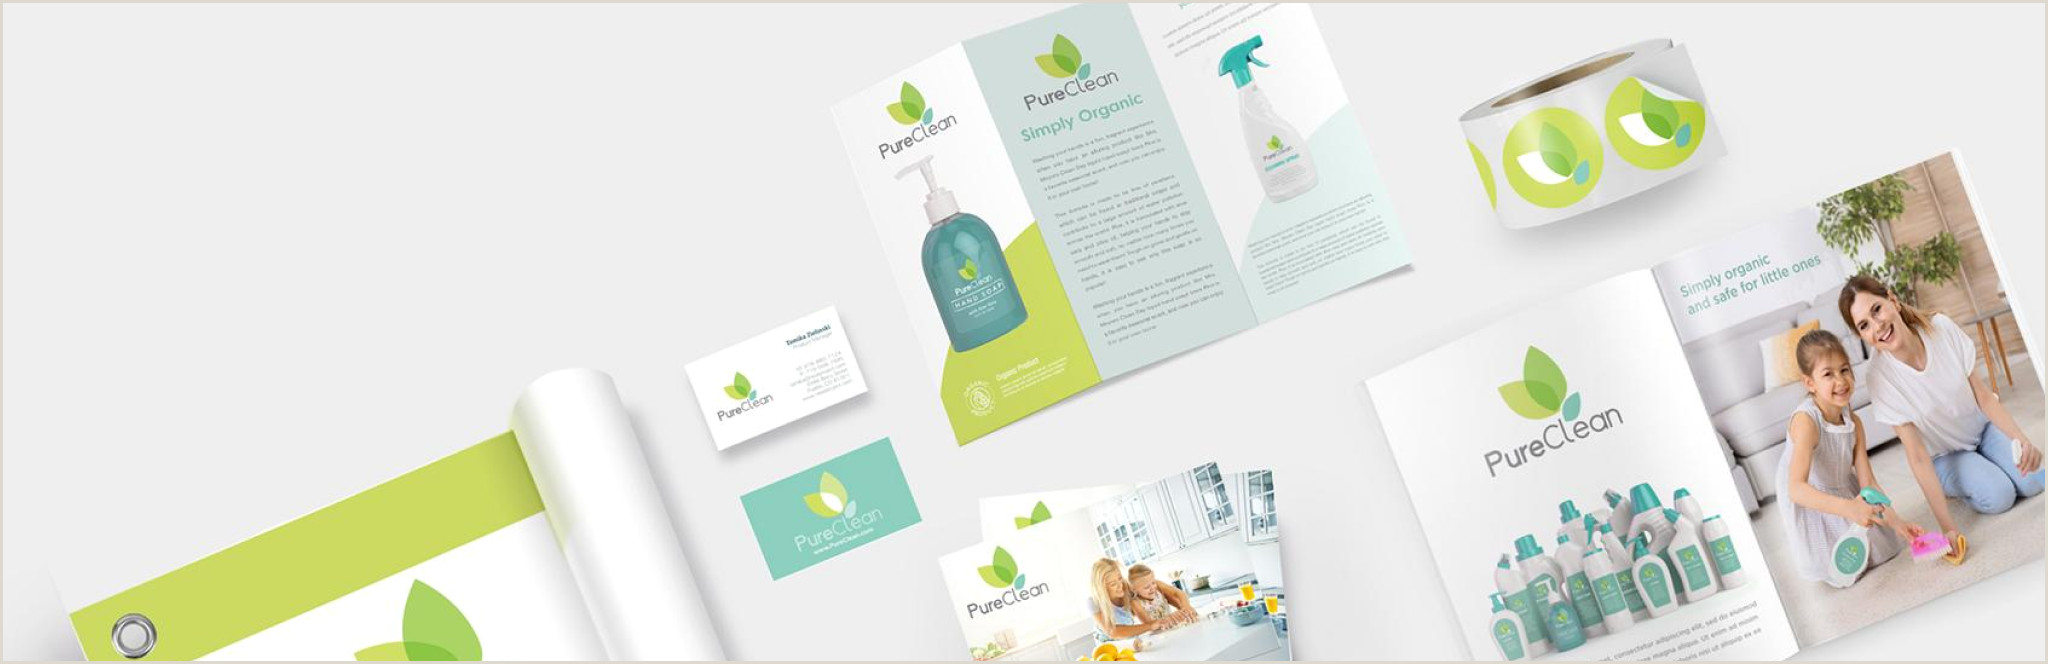 Best Business Cards Printing Service Printplace High Quality Line Printing Services